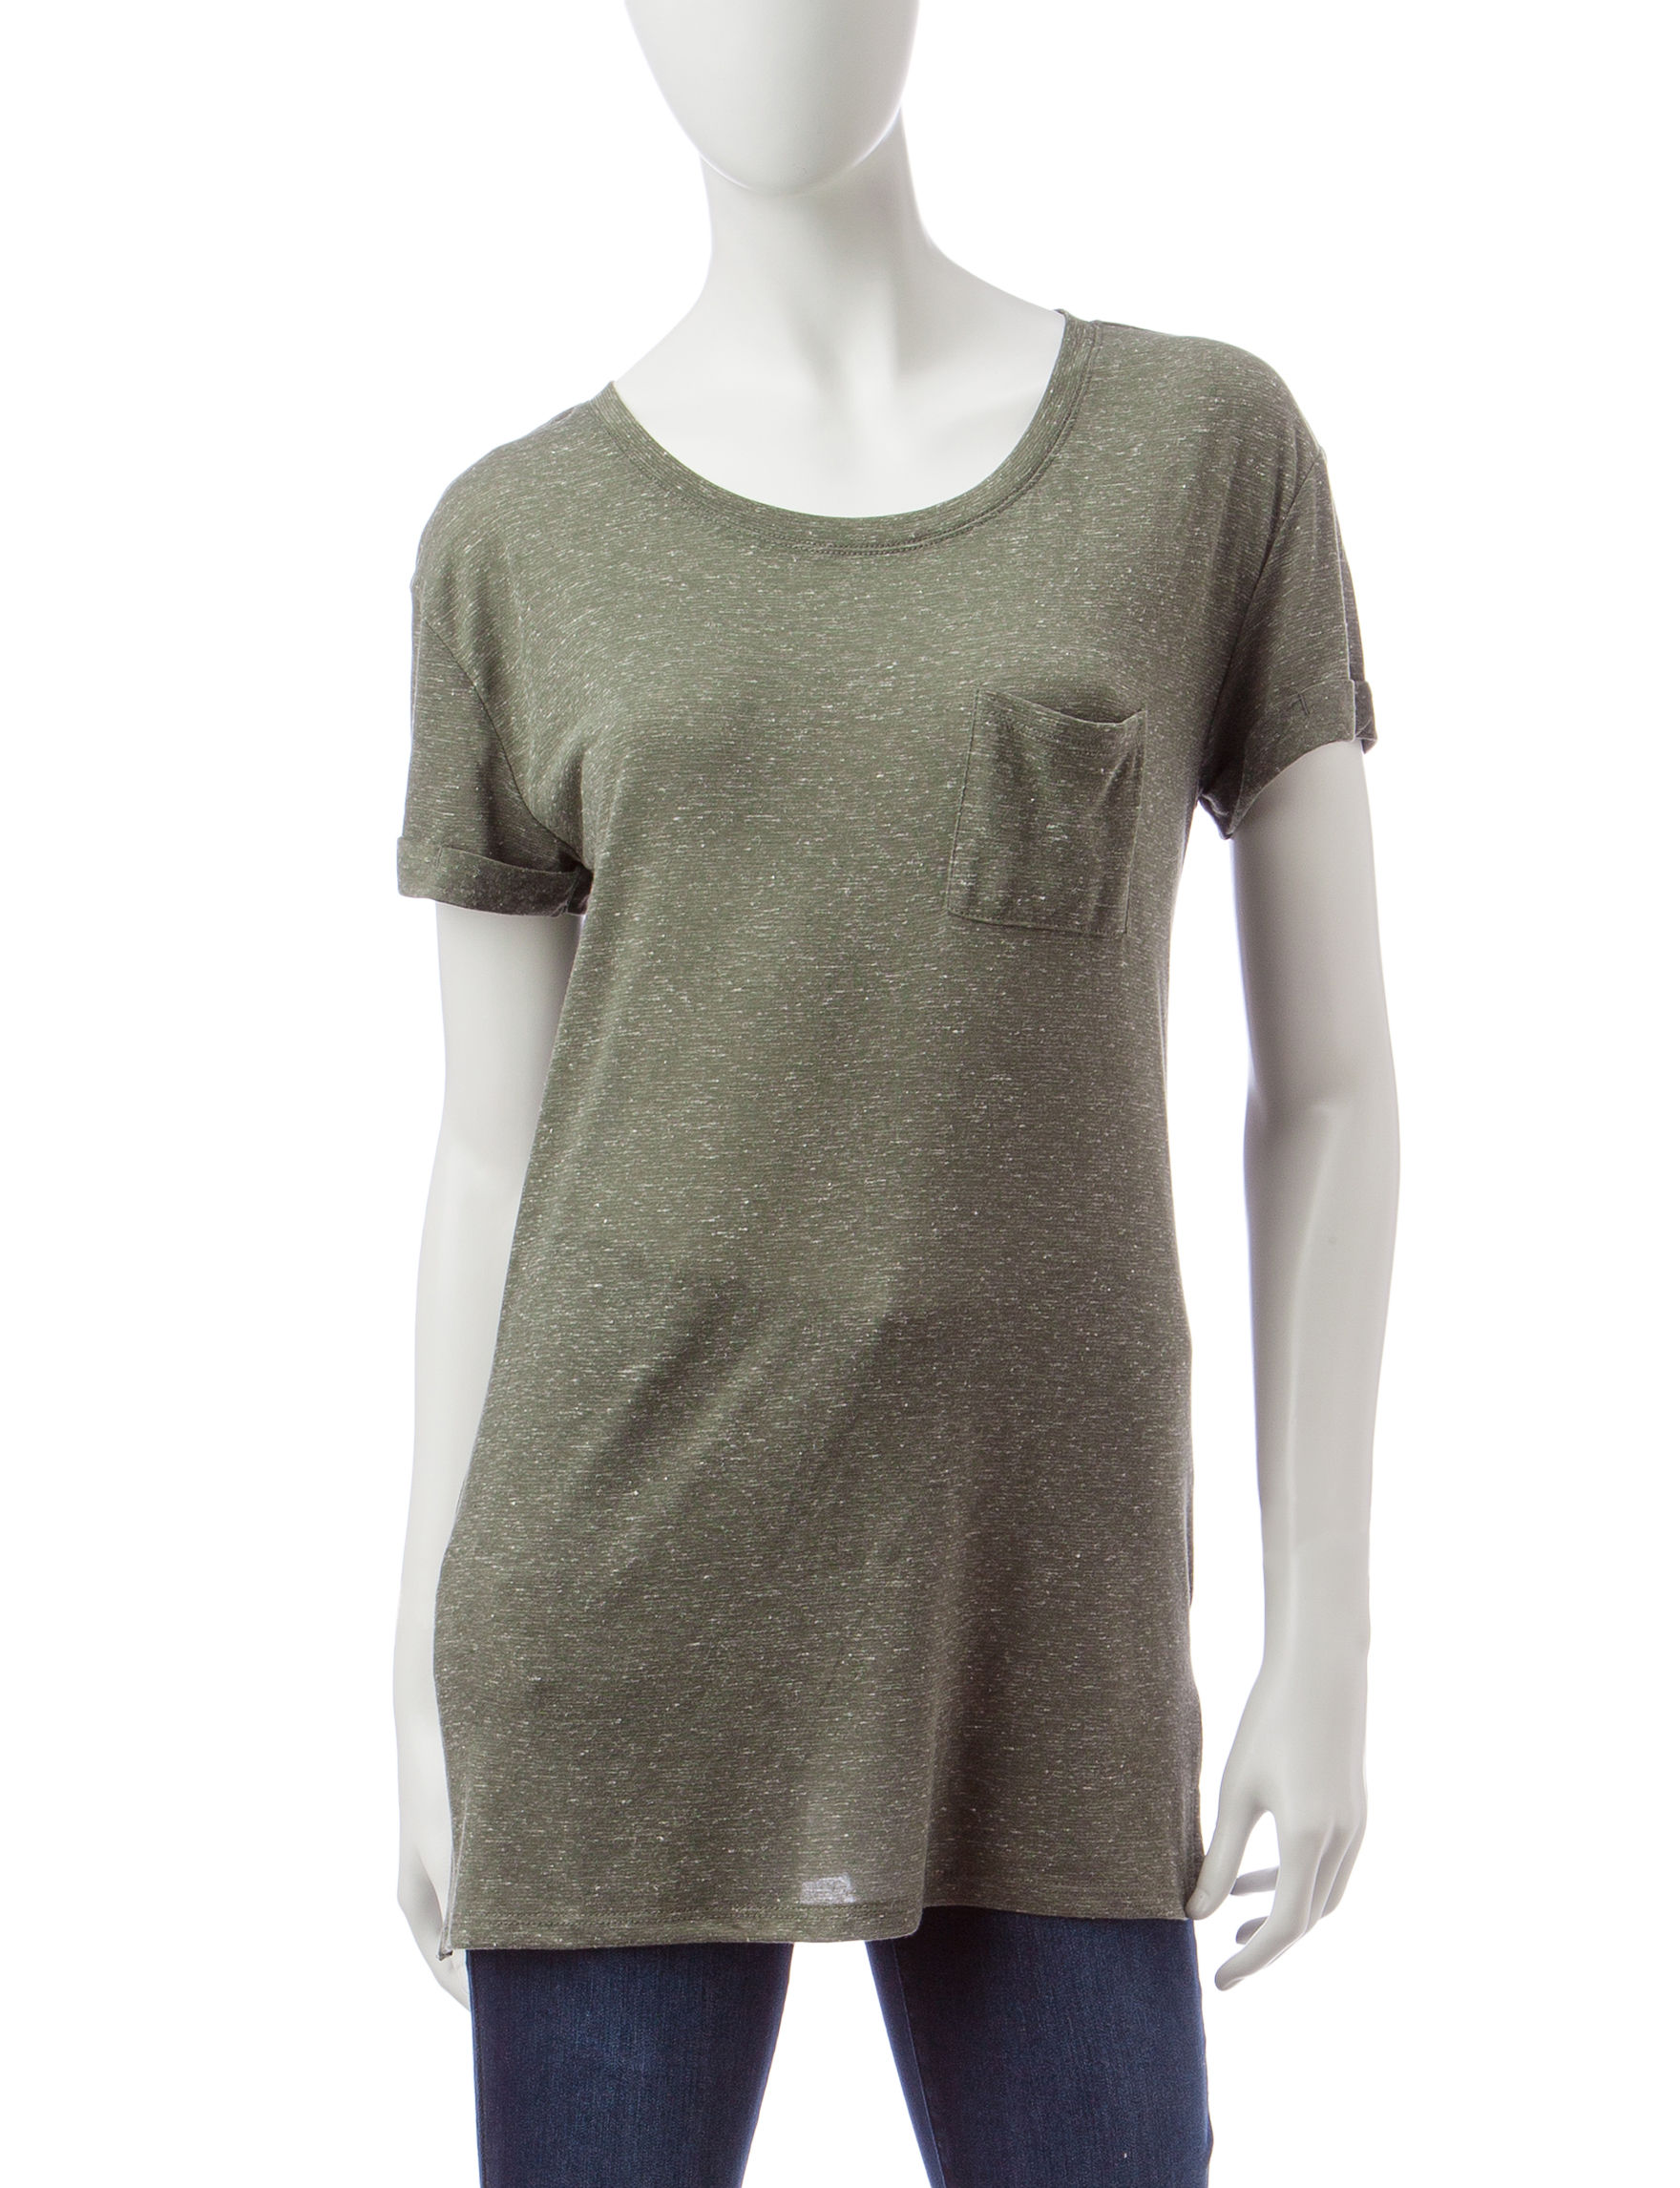 Wishful Park Olive Tees & Tanks